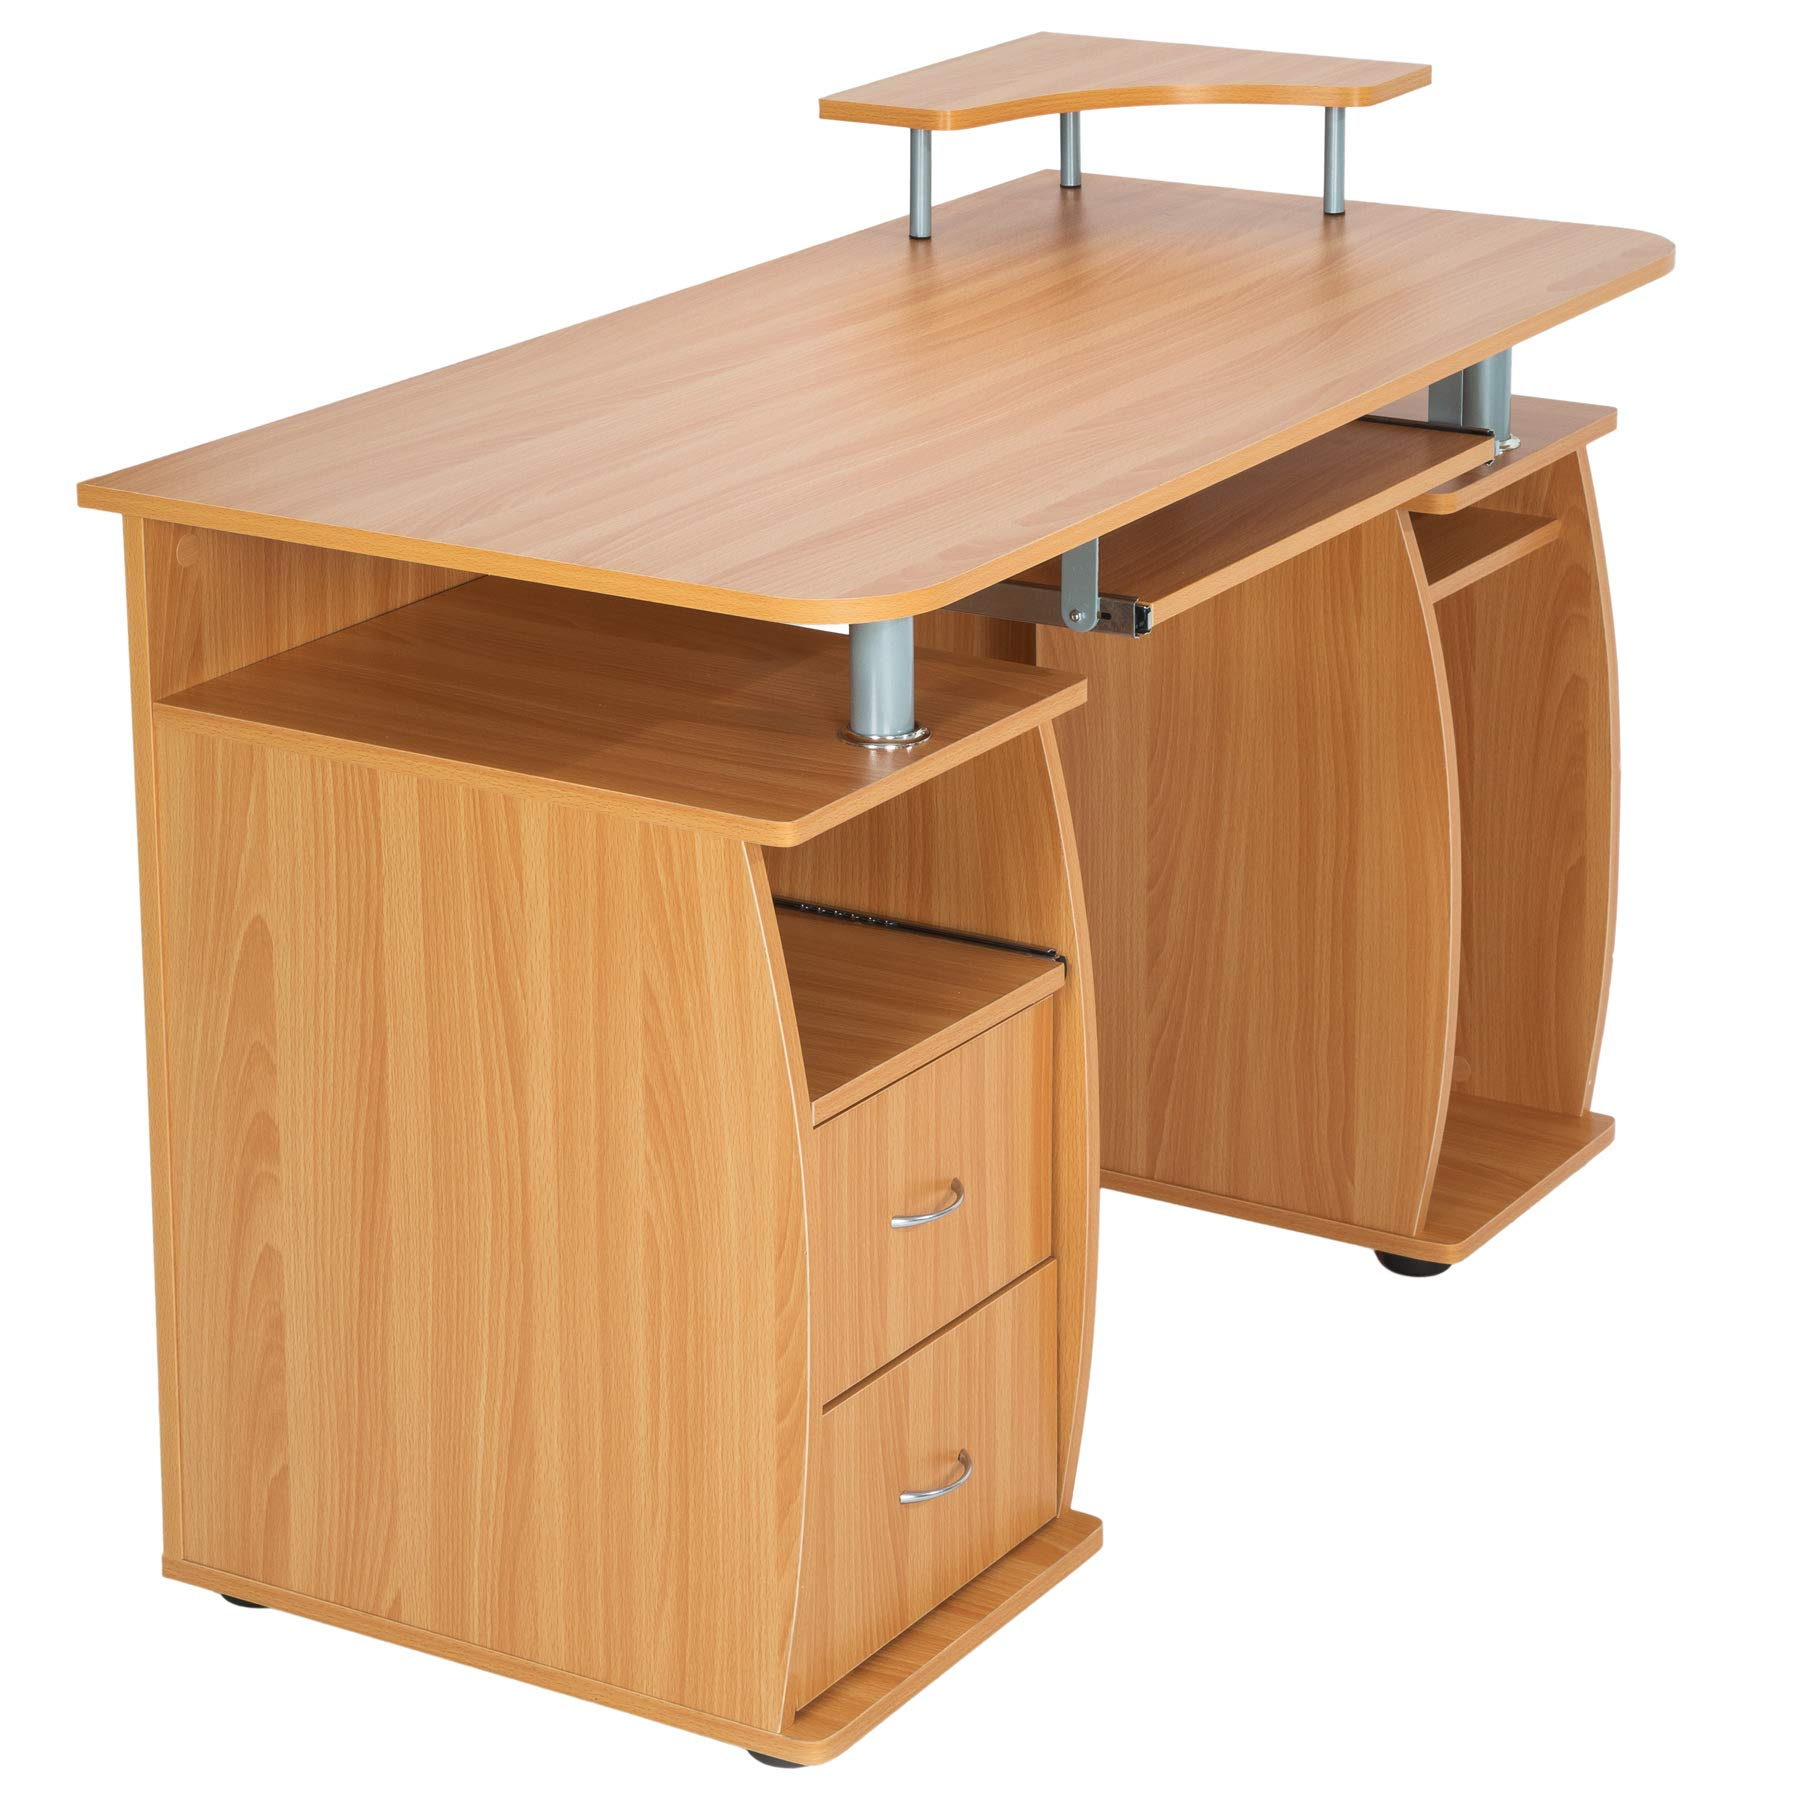 73cm WYQAU Home Office Computer Desk PC Laptop Study Gaming Table Computer Workstation with Keyboard position and host position for Small Home and Office Space NO01-Sandalwood/_100*40